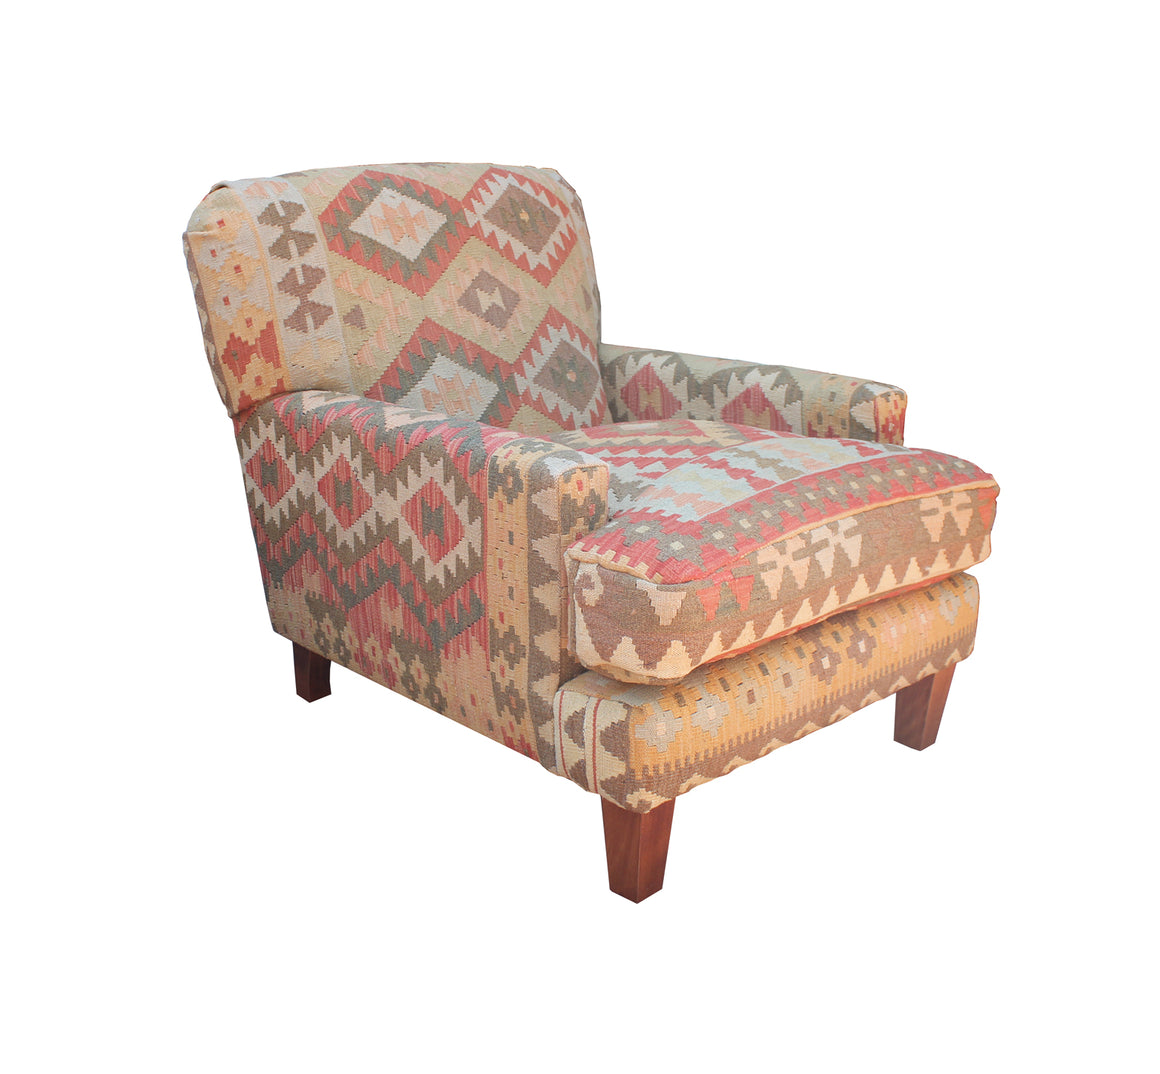 Worcester Fixed Back Sofas and Chairs in Kilim